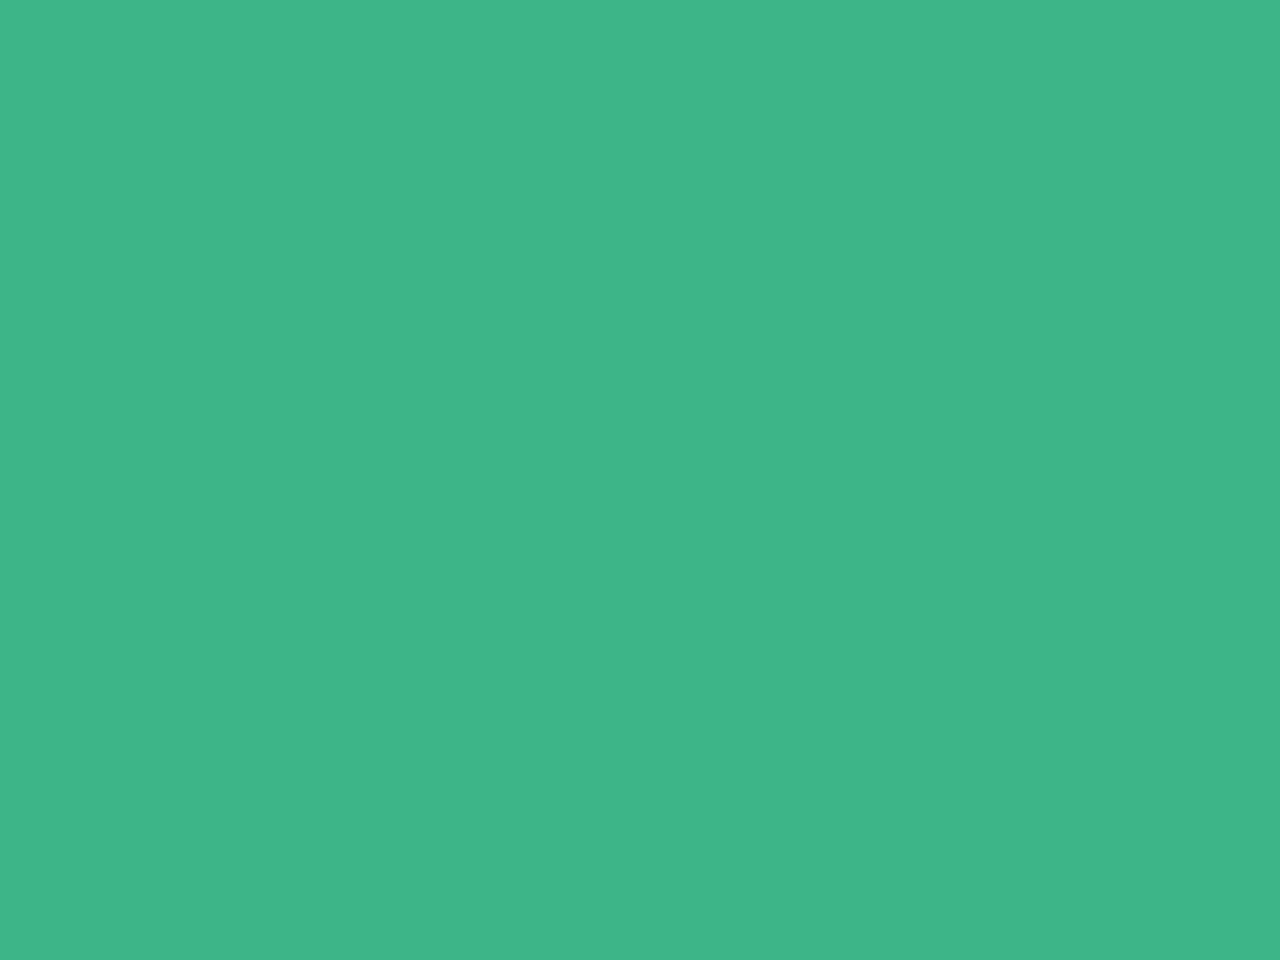 1280x960 Mint Solid Color Background